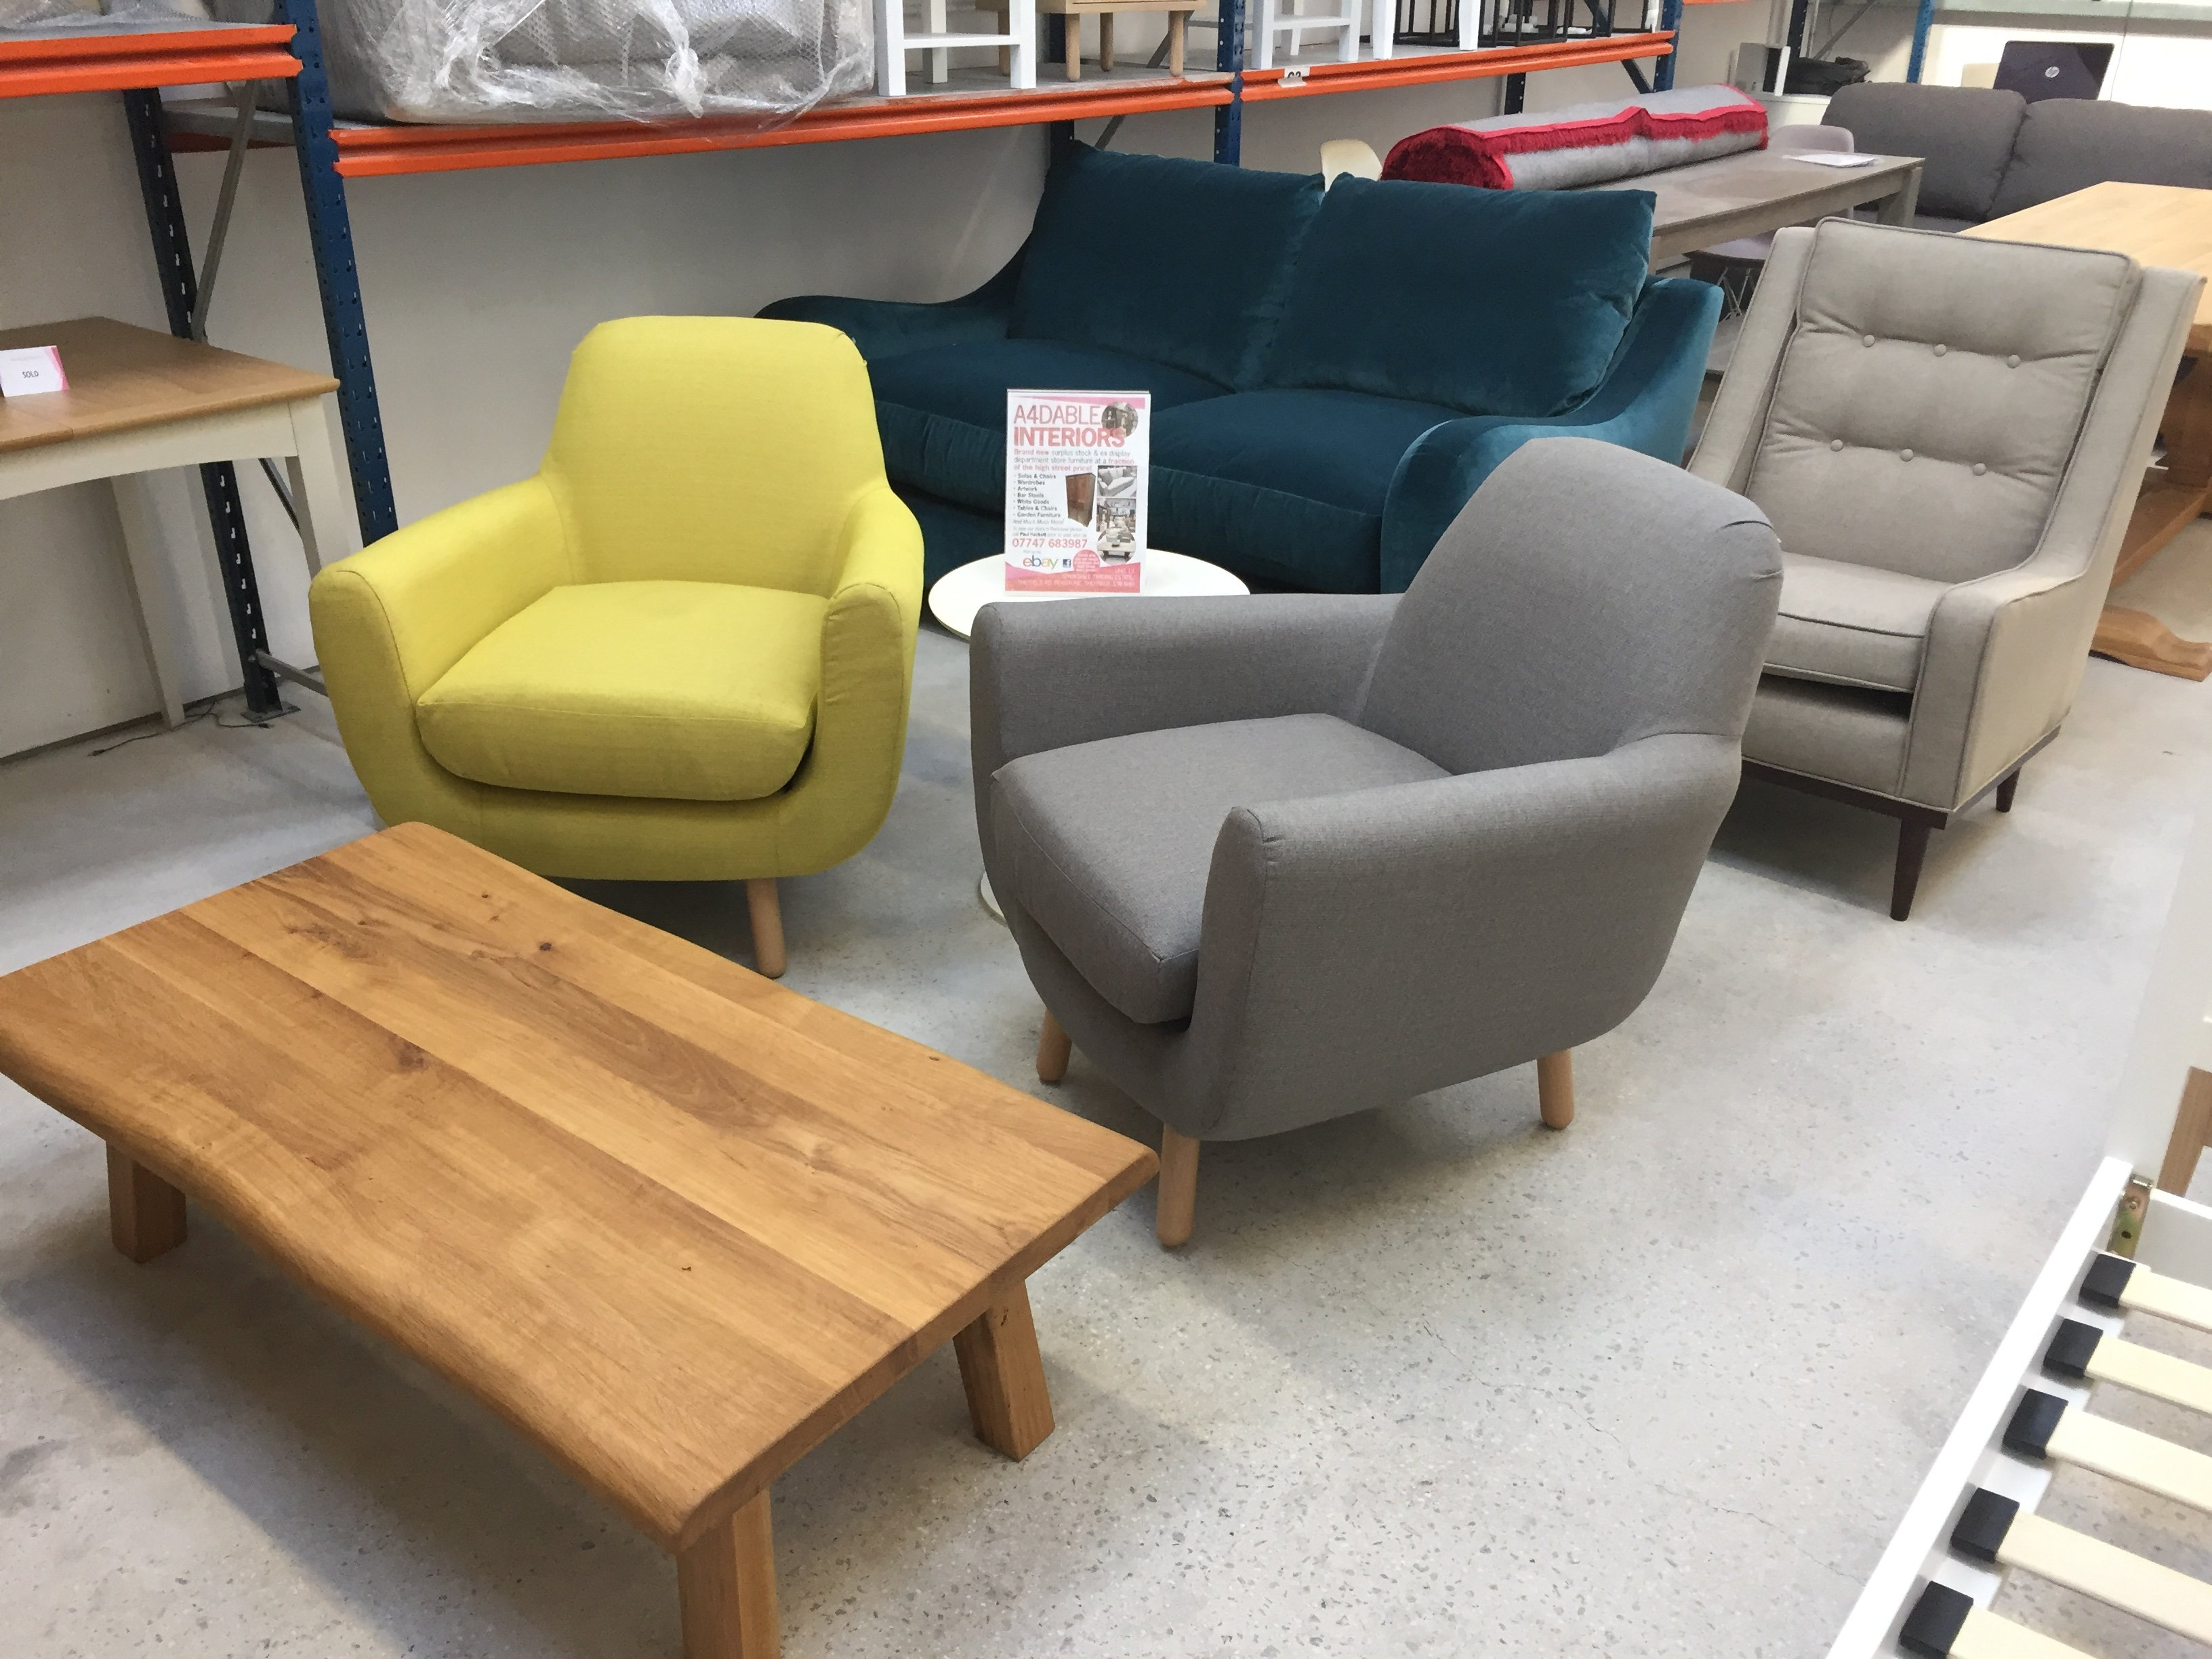 Affordable Furniture Sheffield A4dable Interiors